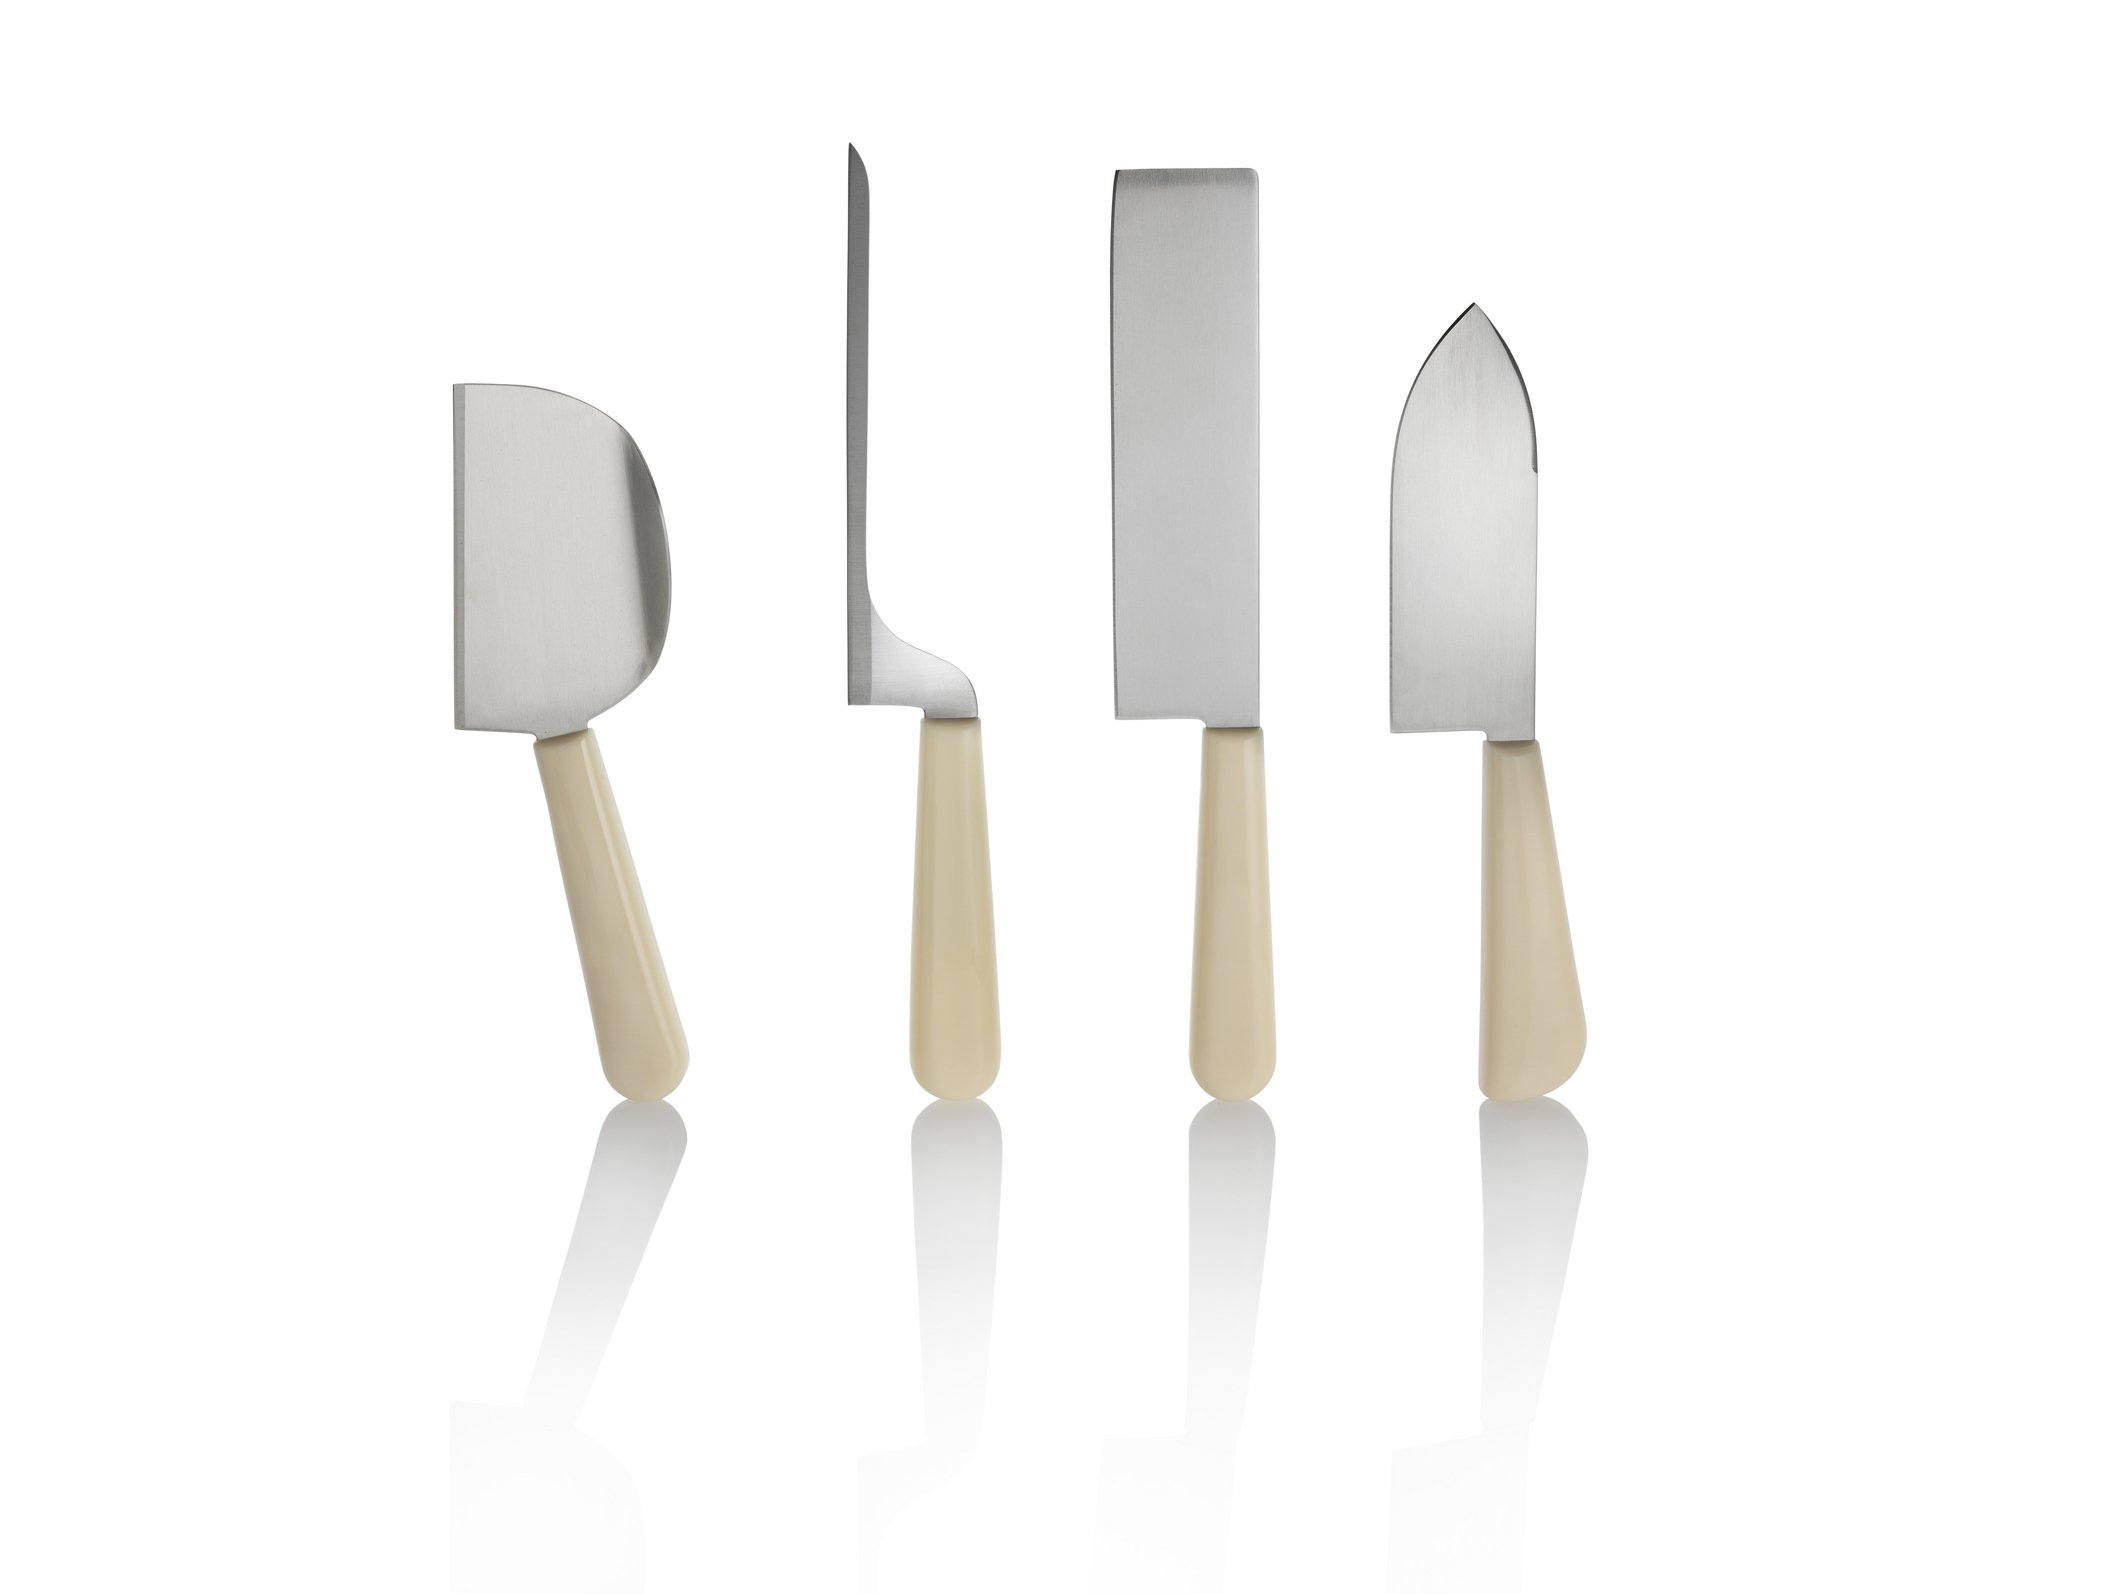 Alessi GAG500S3'' K''''Milky Way Minor'' Set Cheese Knives Multicolor by Alessi (Image #1)